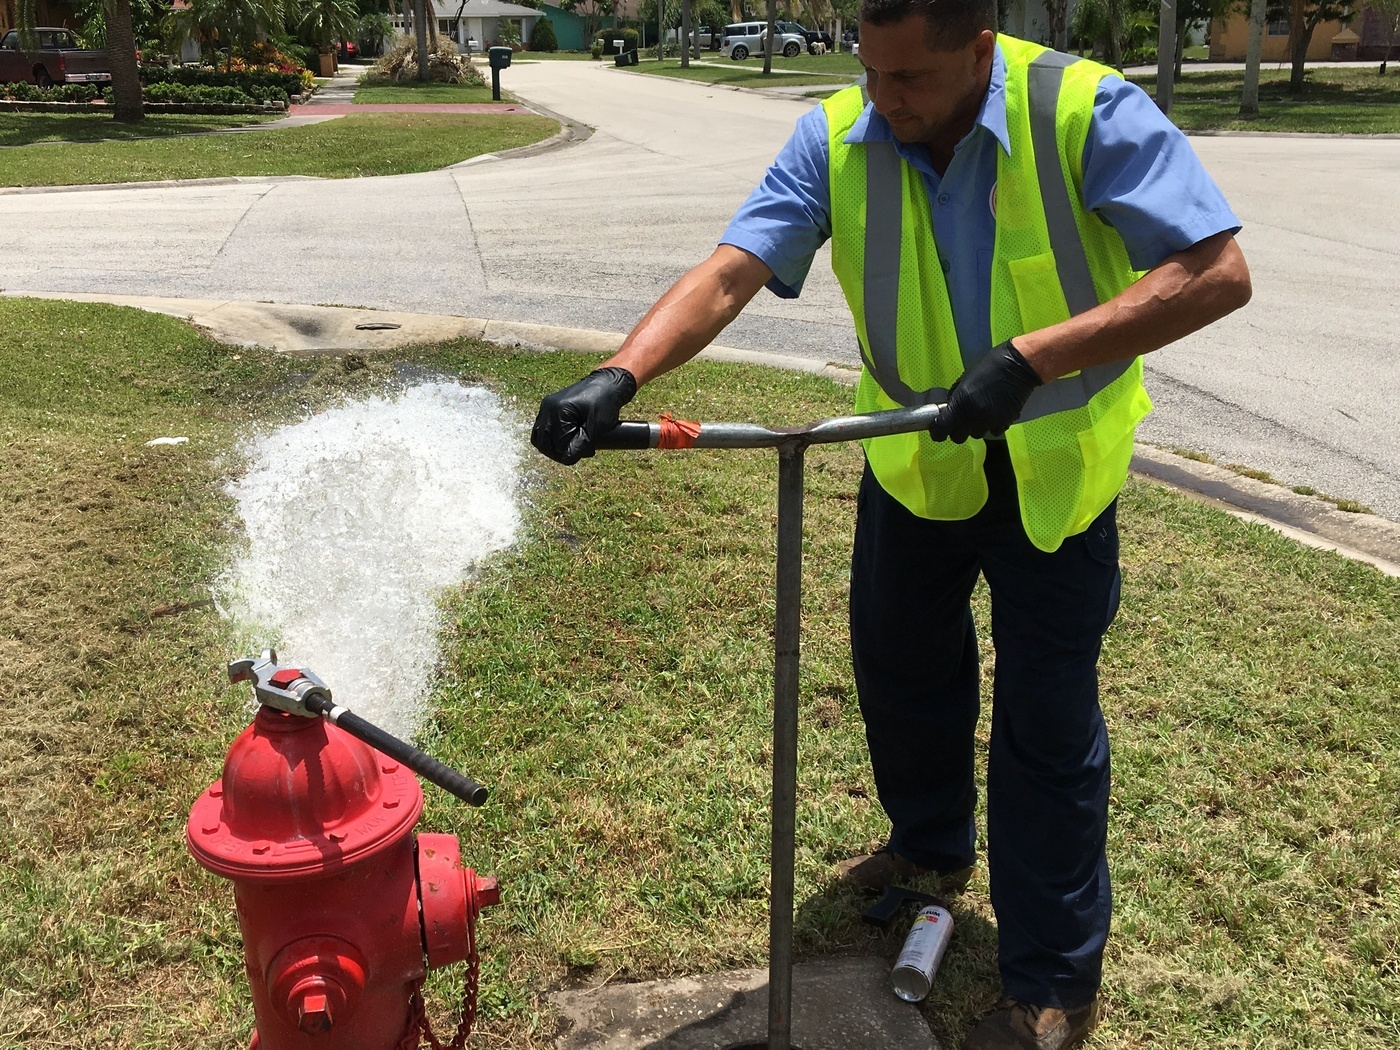 hydrant flush with utility worker